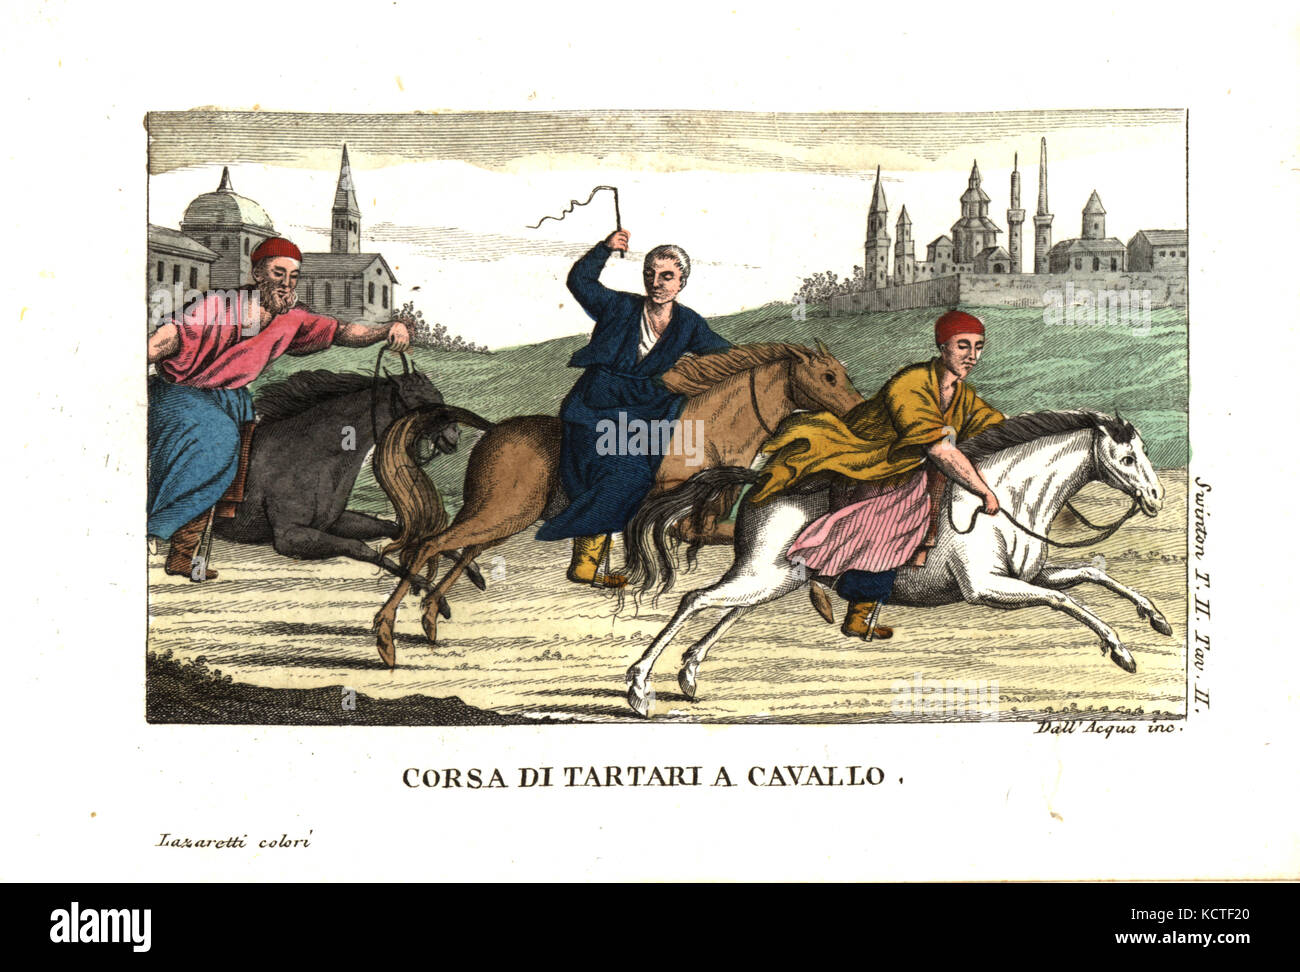 Tartars or tatars horse-racing. Illustration from Andrew Swinton's Travels into Norway, Denmark and Russia, 1792. - Stock Image